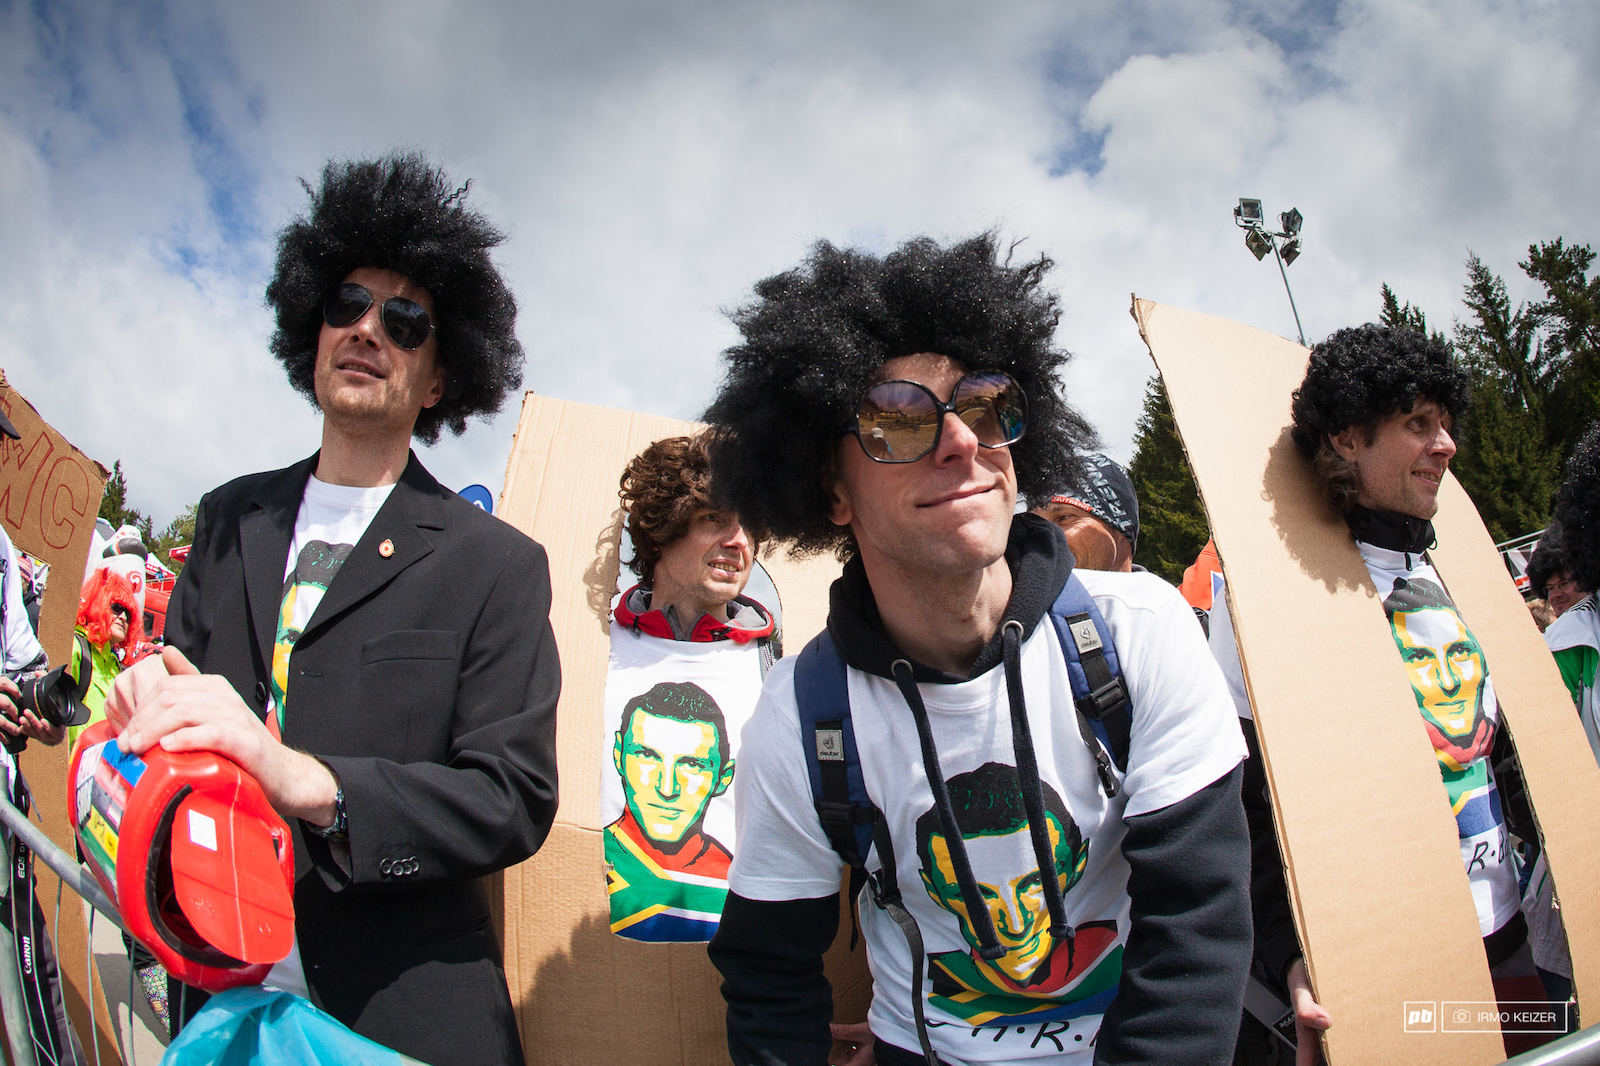 Fans of Jaroslav Kulhavy during the 2013 UCI Mountainbike World Cup at Nove Mesto Czech Republic.